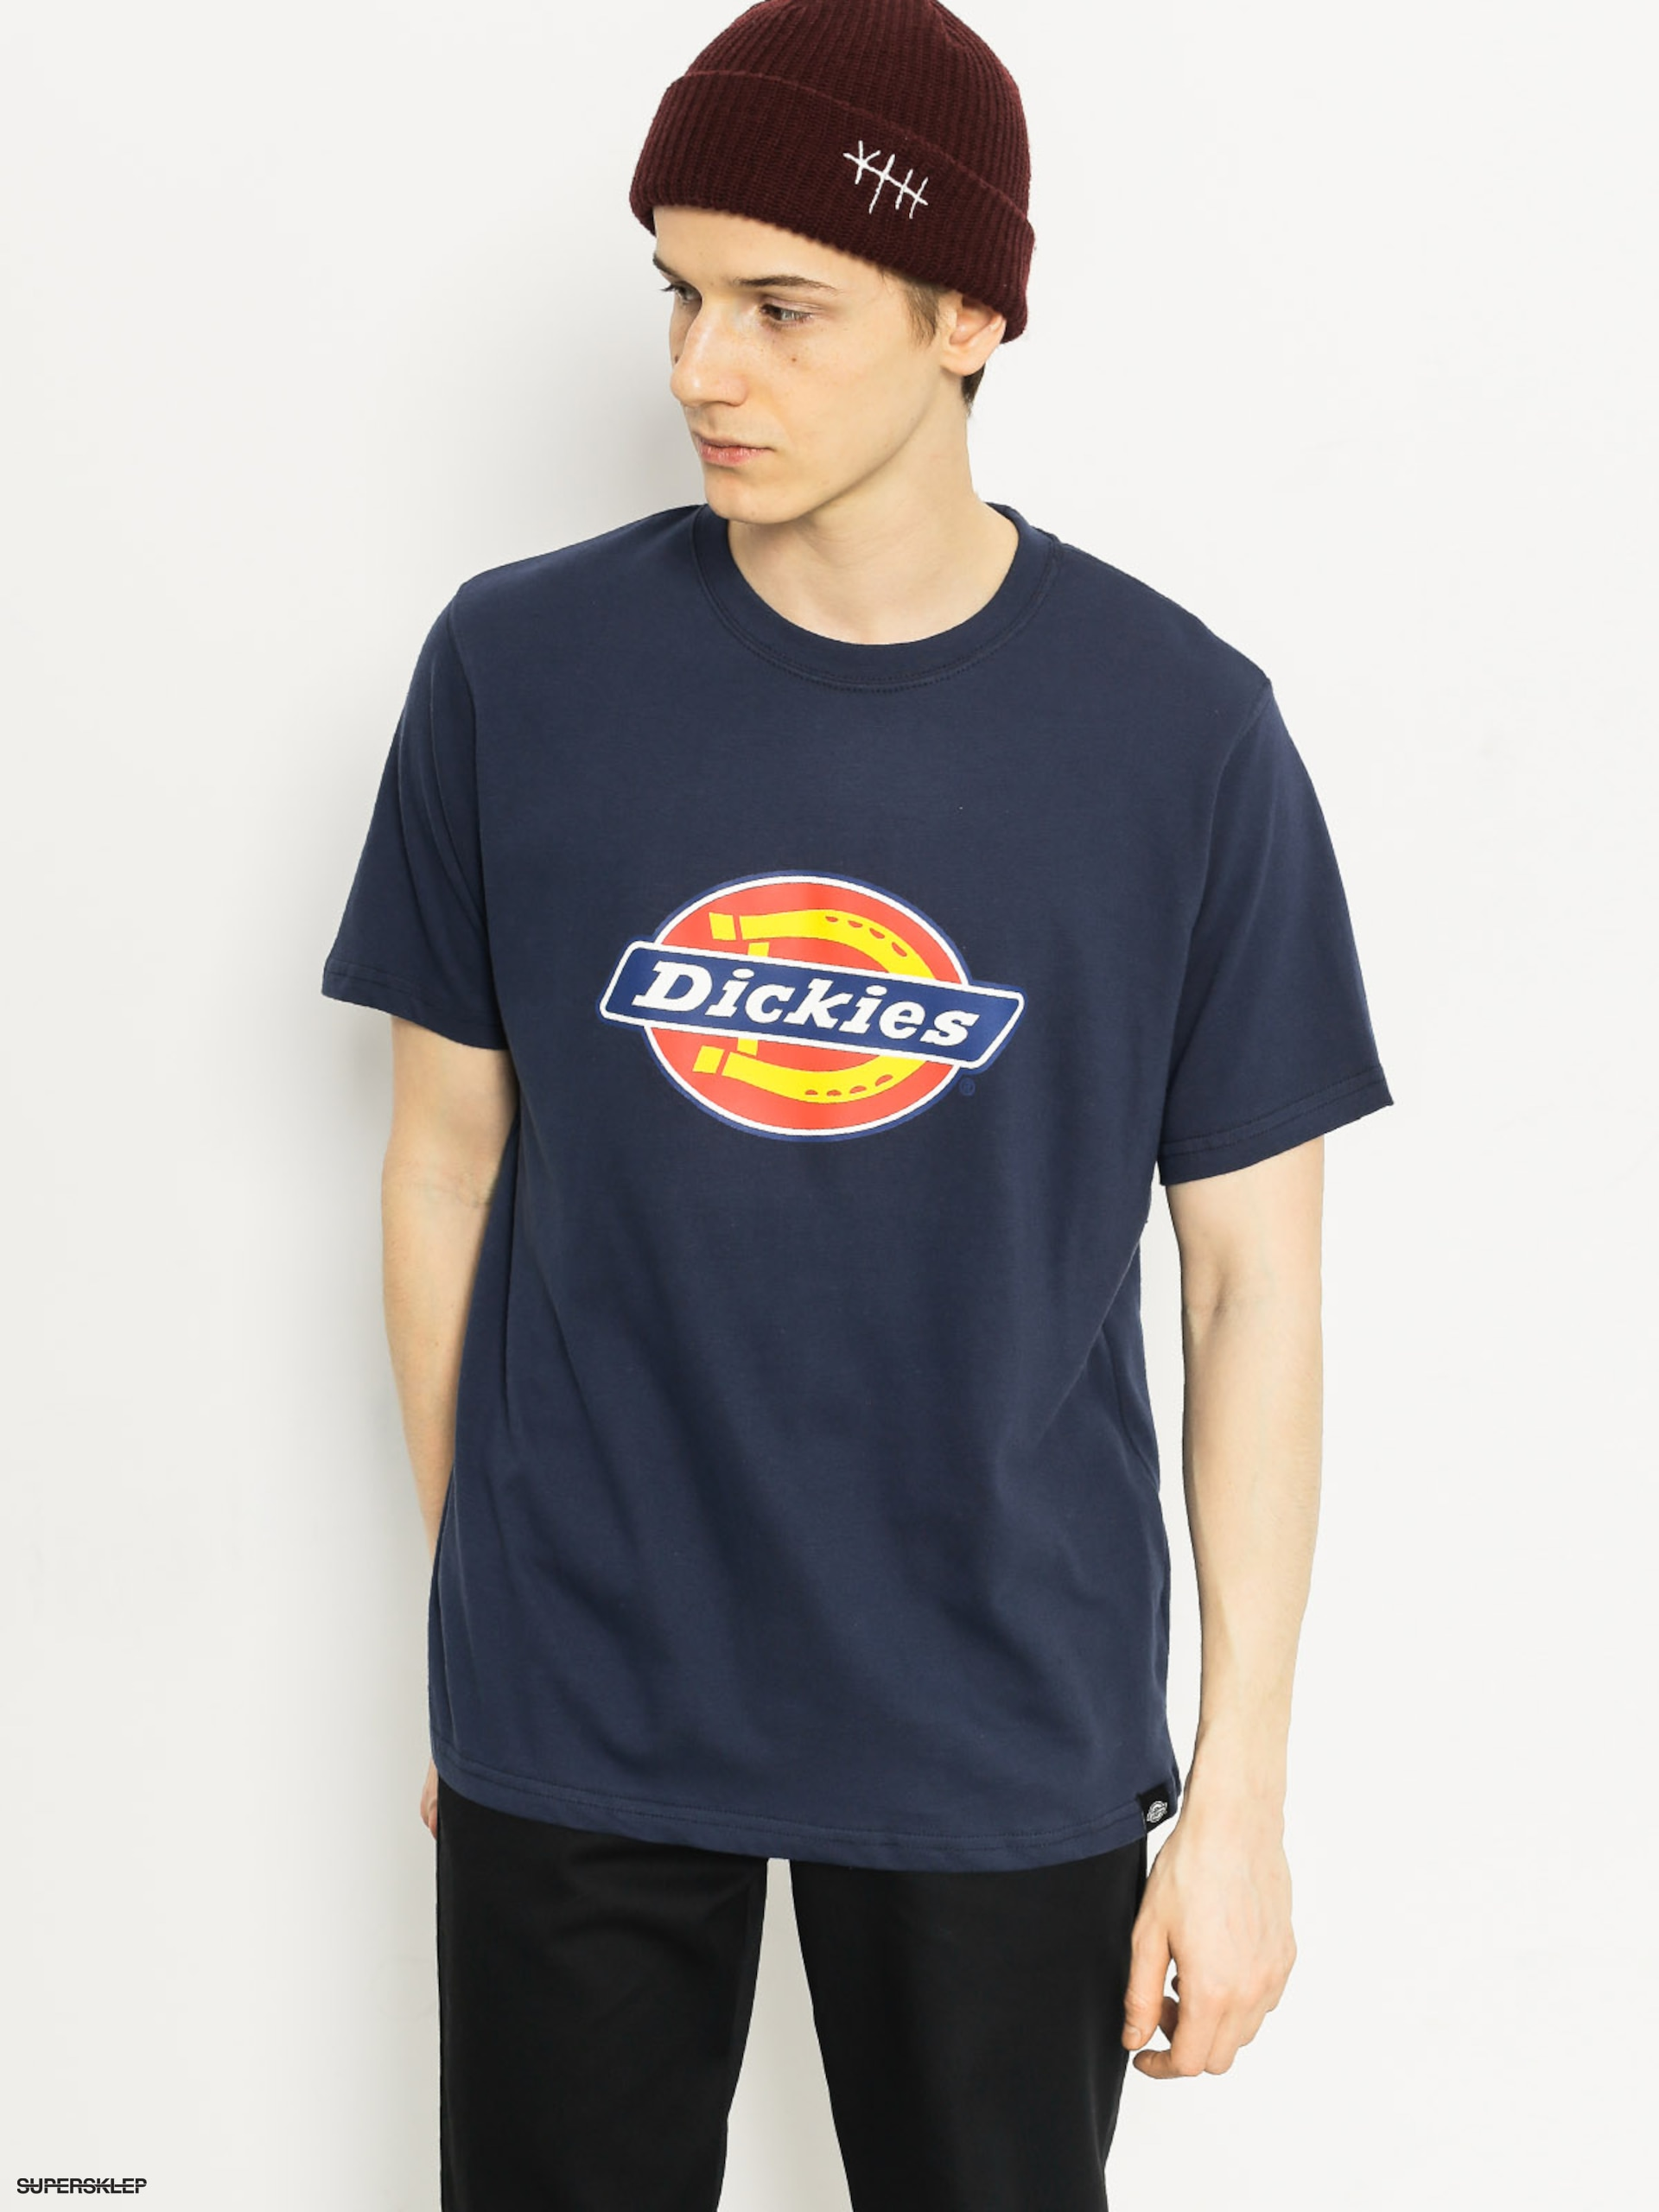 Tričko Dickies Horseshoe